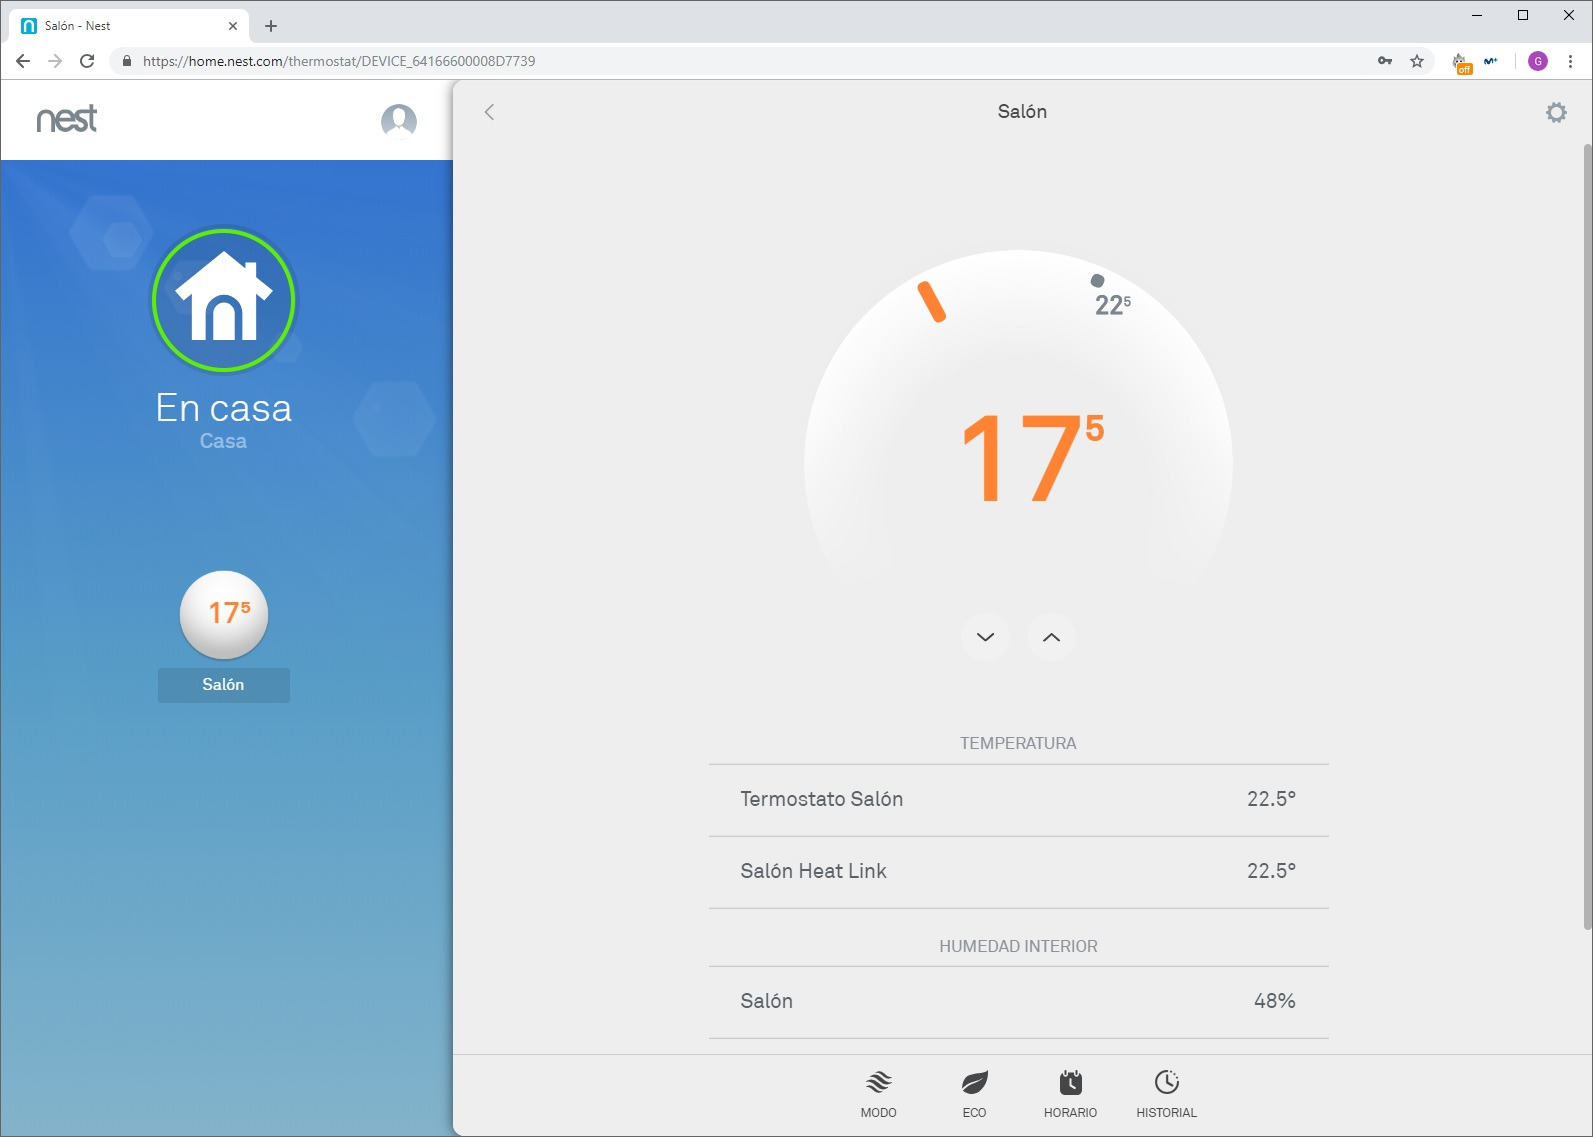 Nest Thermostat E, escuela de calor 47